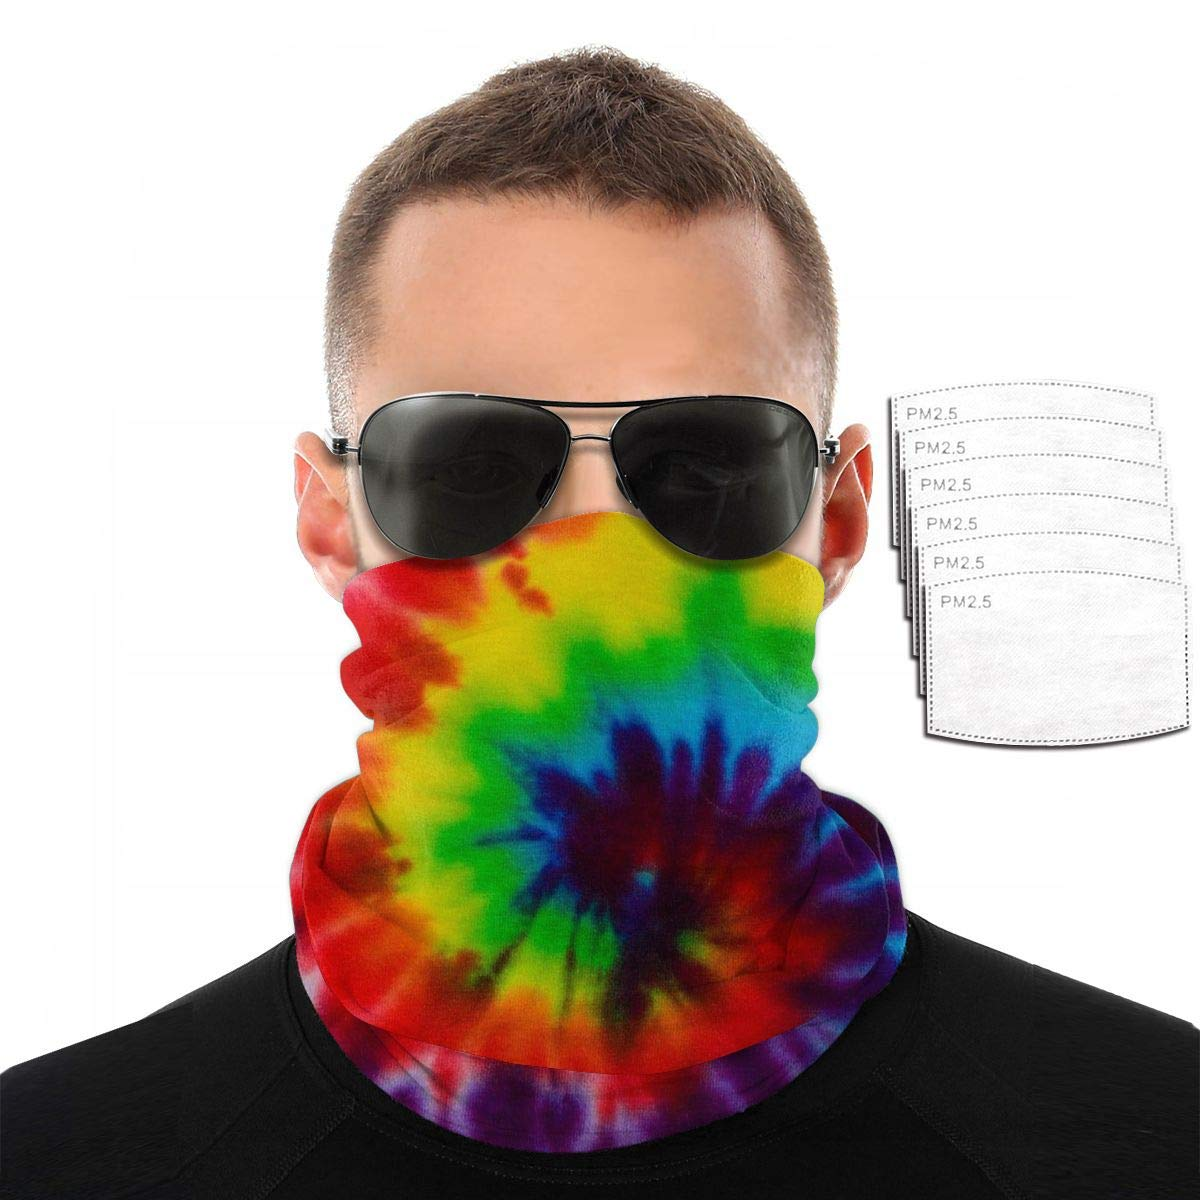 Tie Dye Unisex Neck Gaiter Face Mask with 6 Filters, UV Protection Bandana Balaclava, Dustproof Scarf Headwear Headband for Motorcycle Riding Cycling